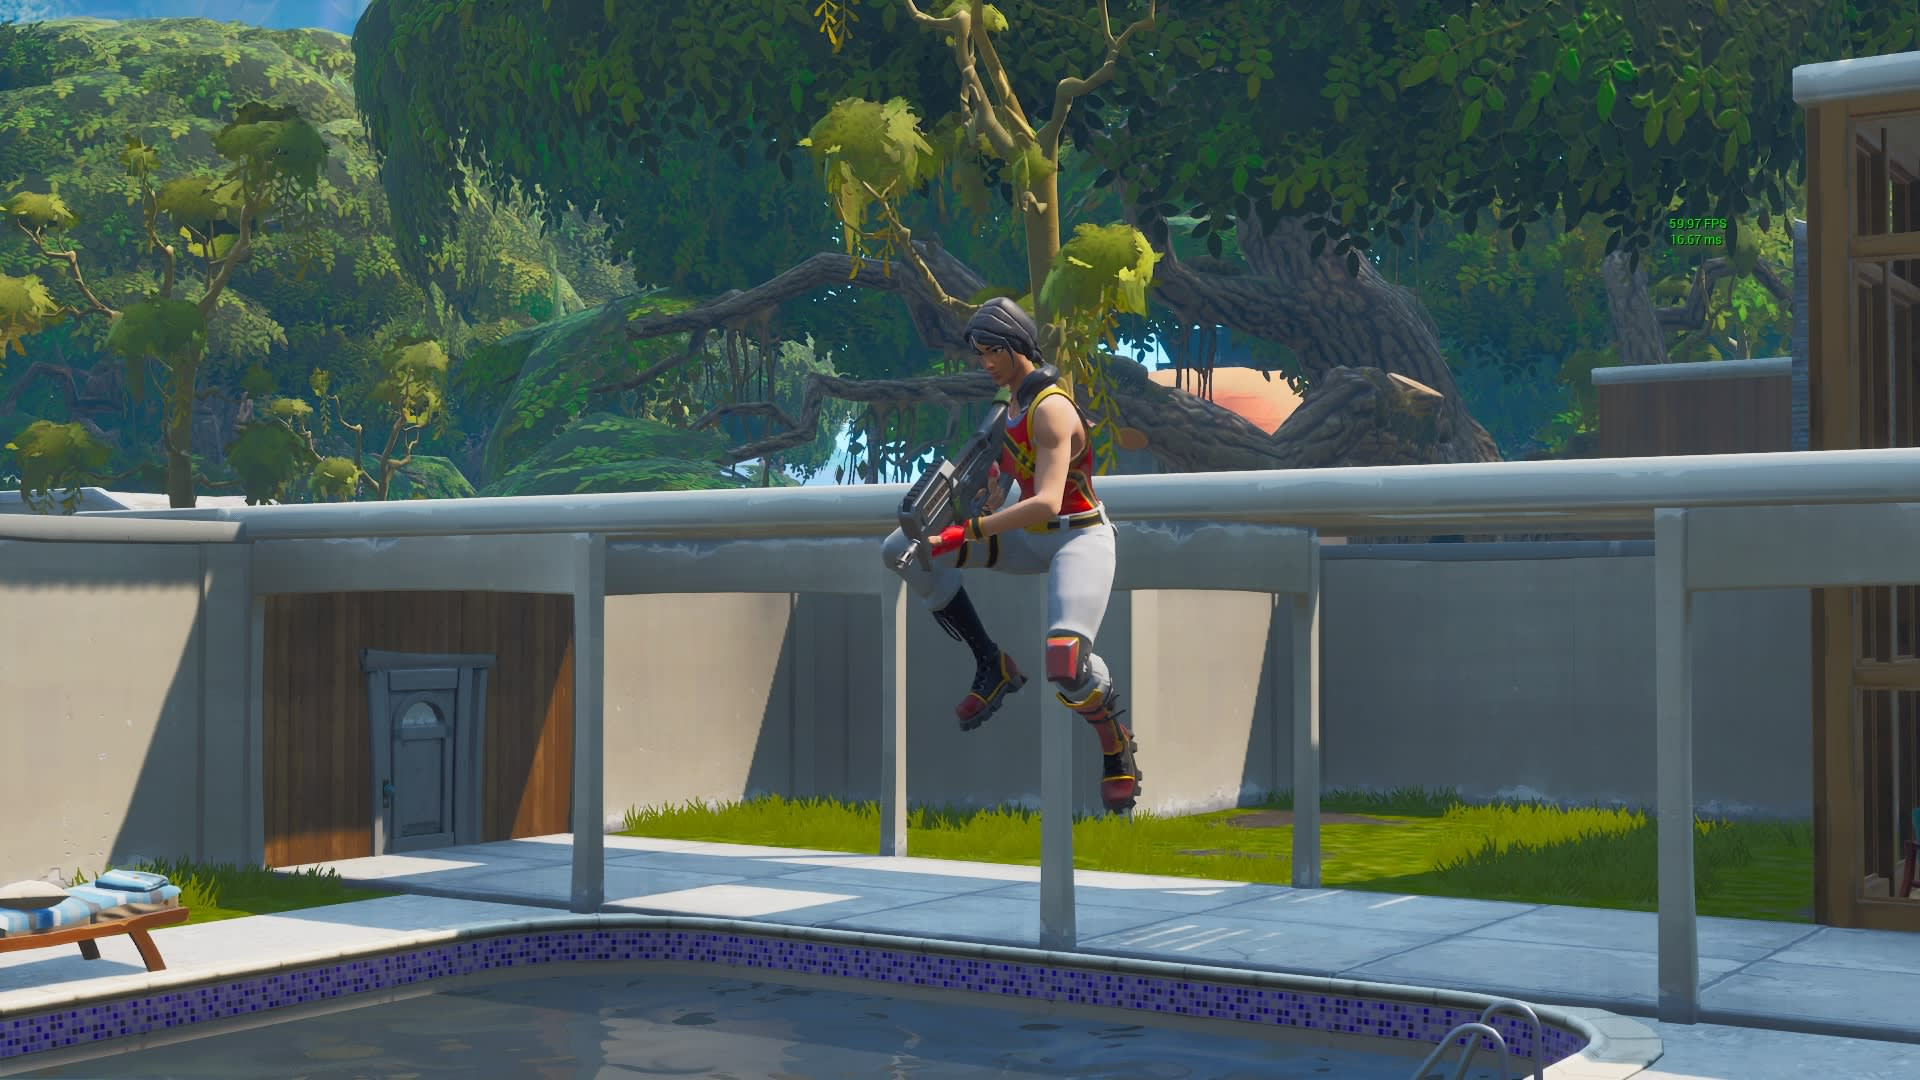 Trampoline Thing In Fortnite Become Your Fortnite Teacher By Botyec Fiverr